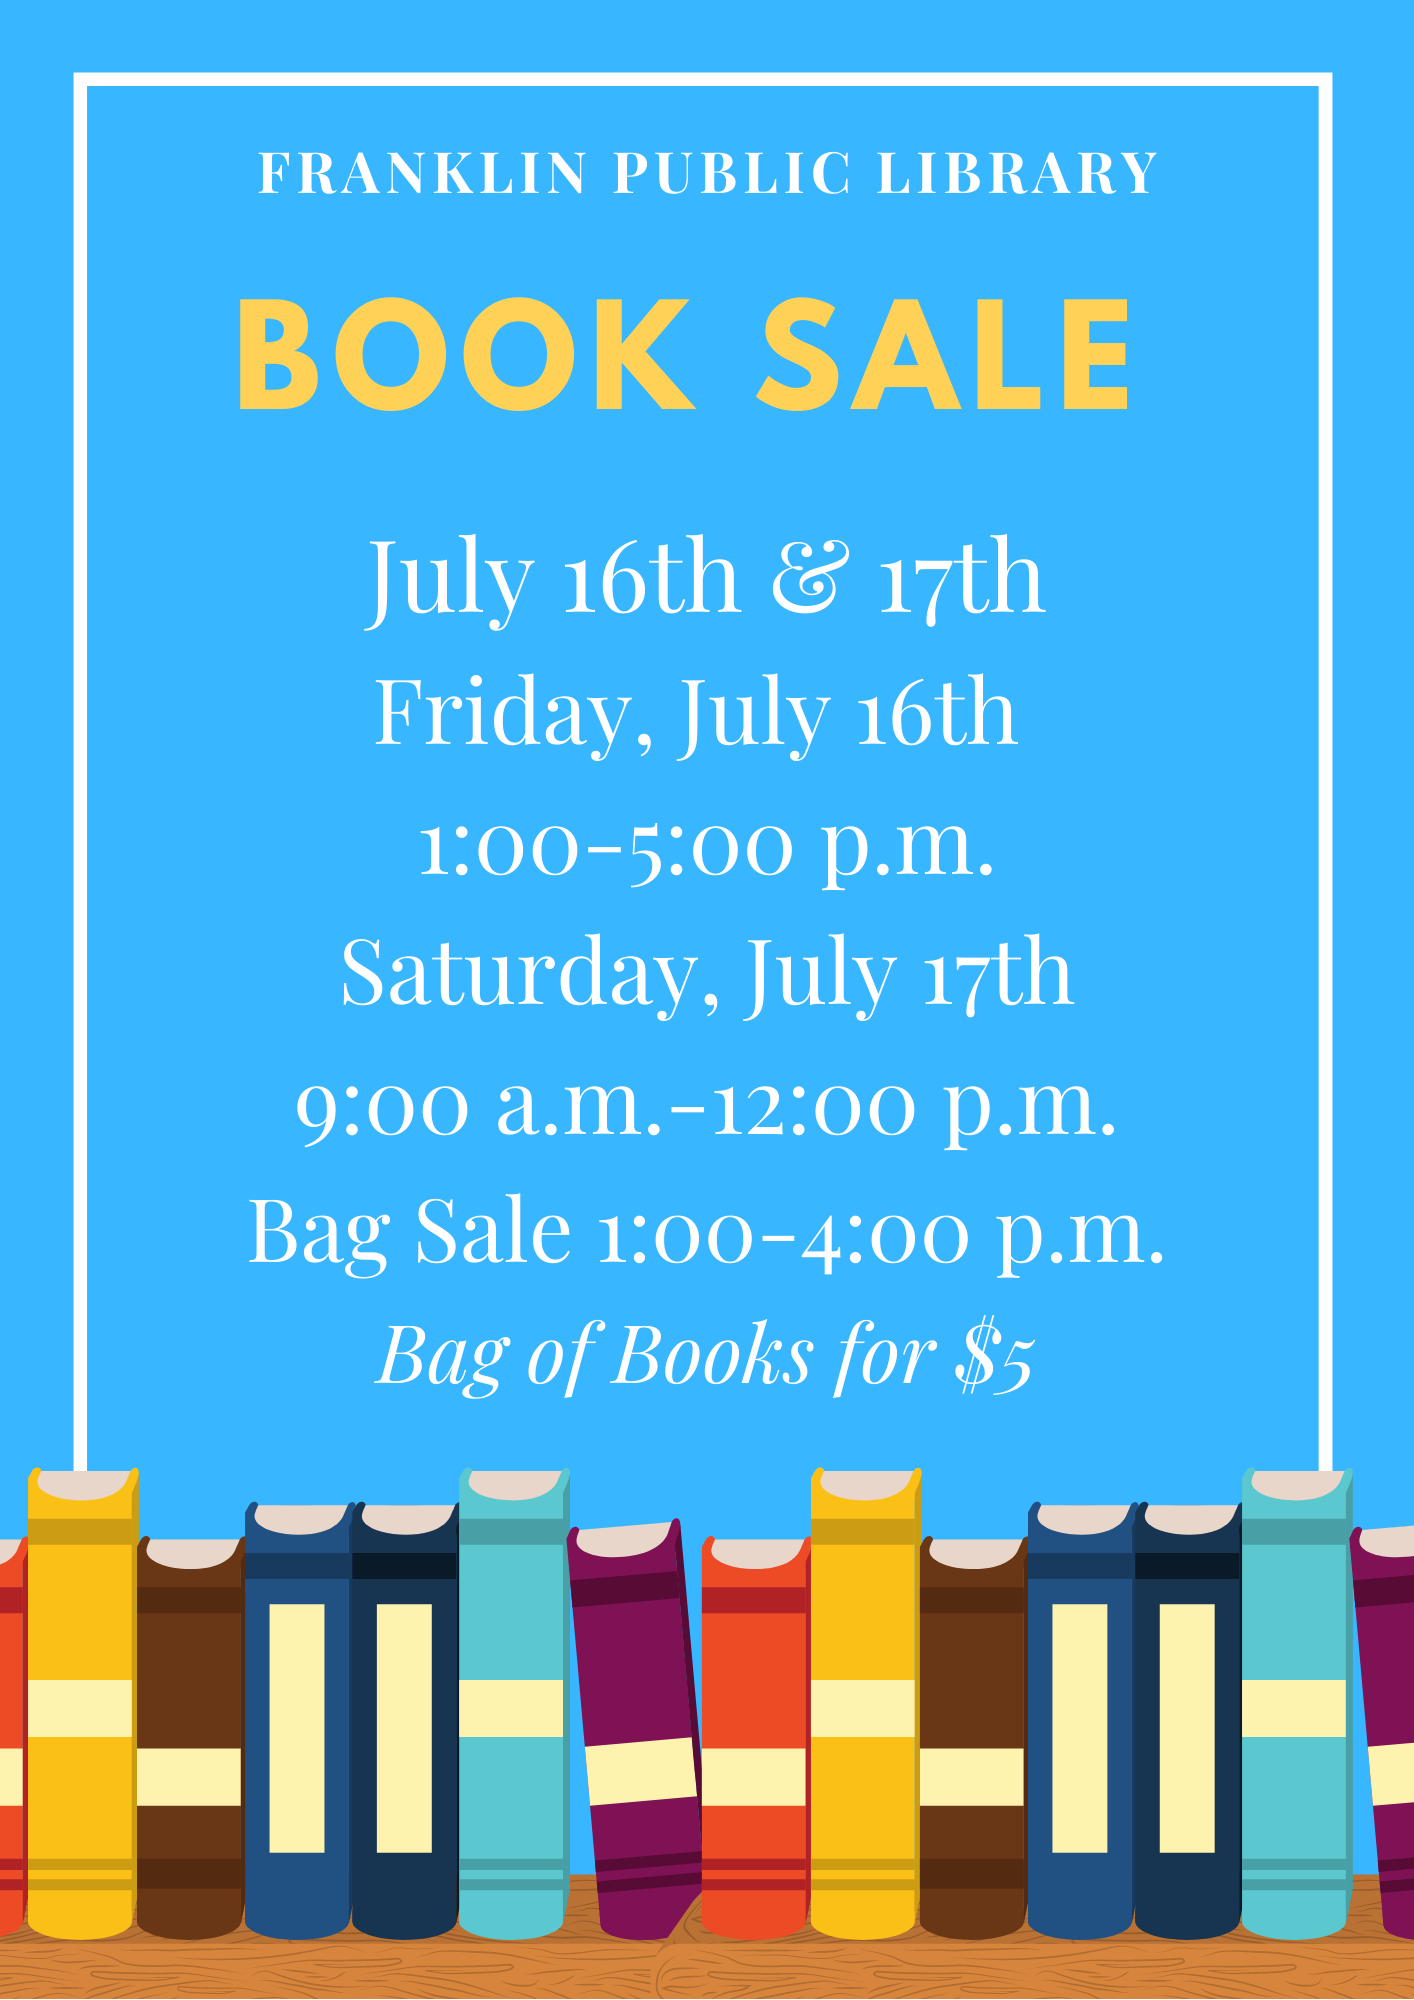 Library Book sale - 9 AM to noon; bag sale 1 to 4 PM today